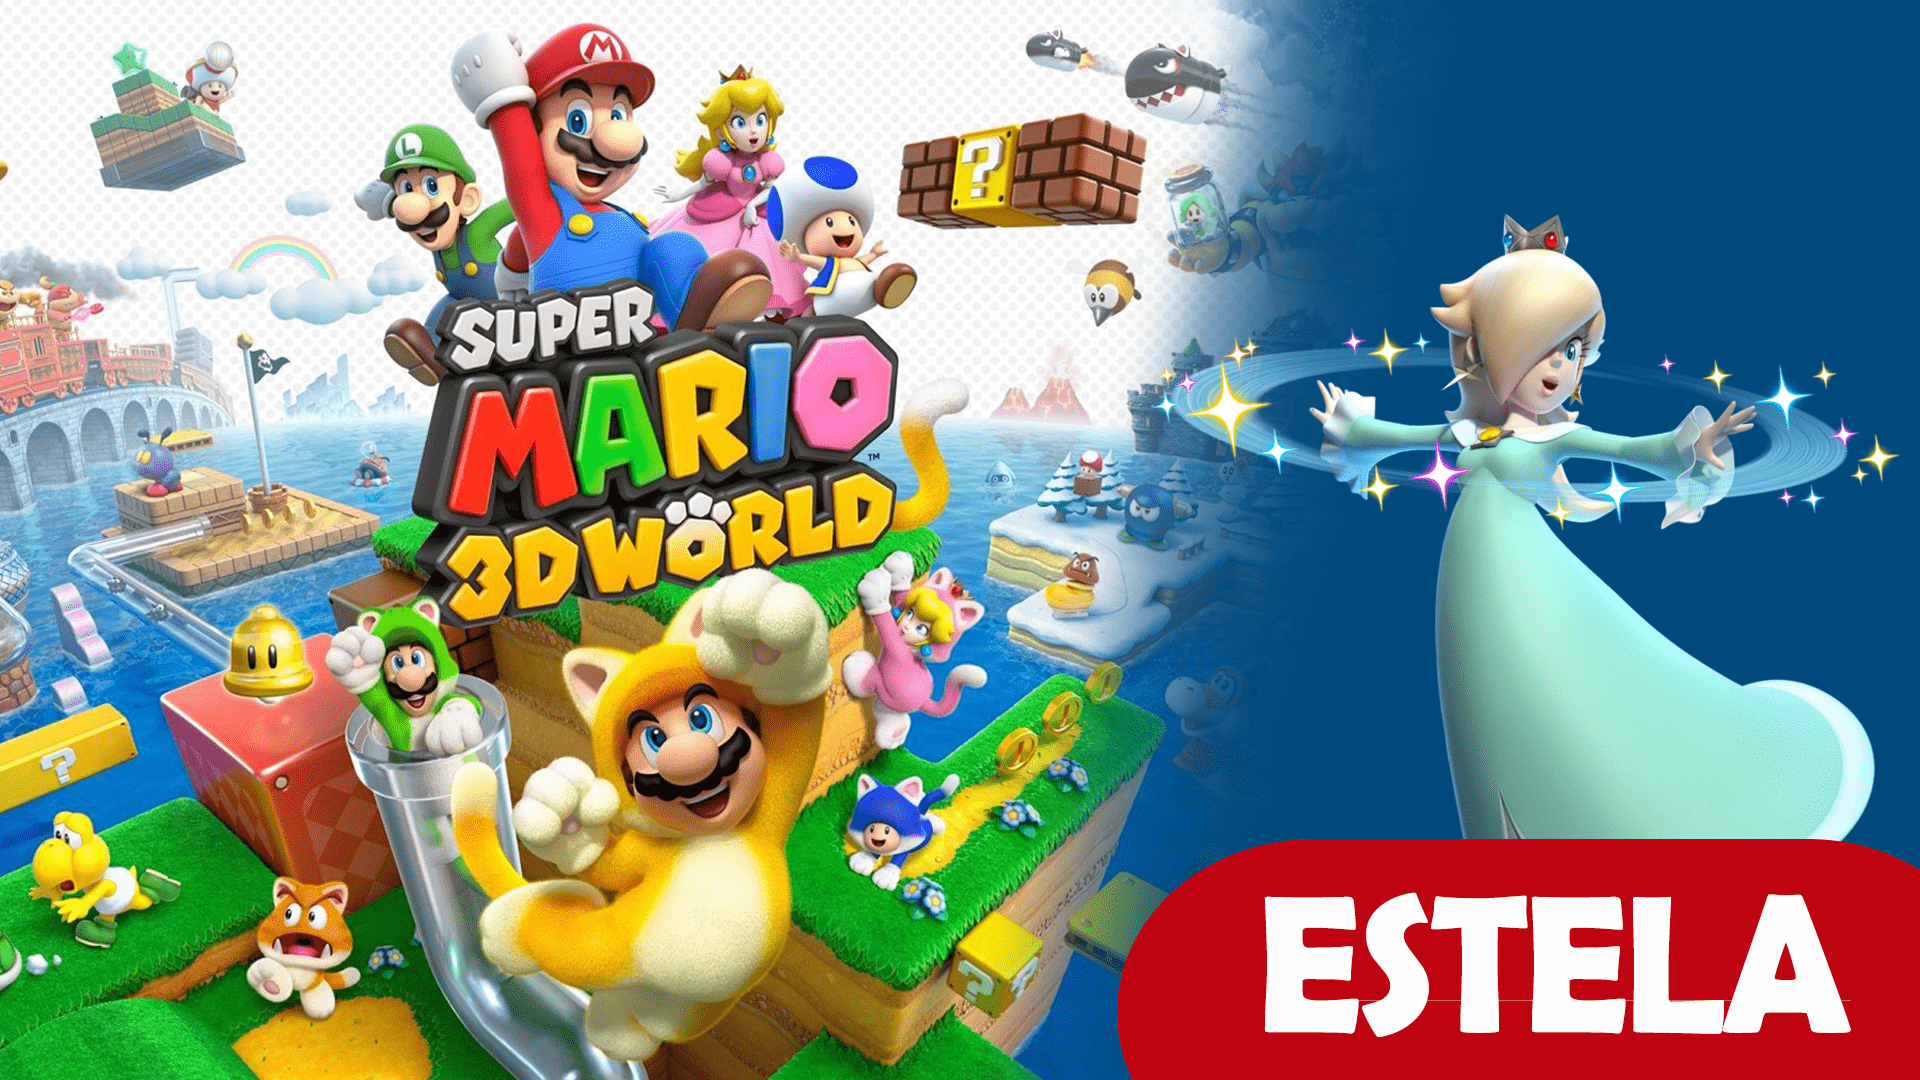 Mario 3D World Estela guia